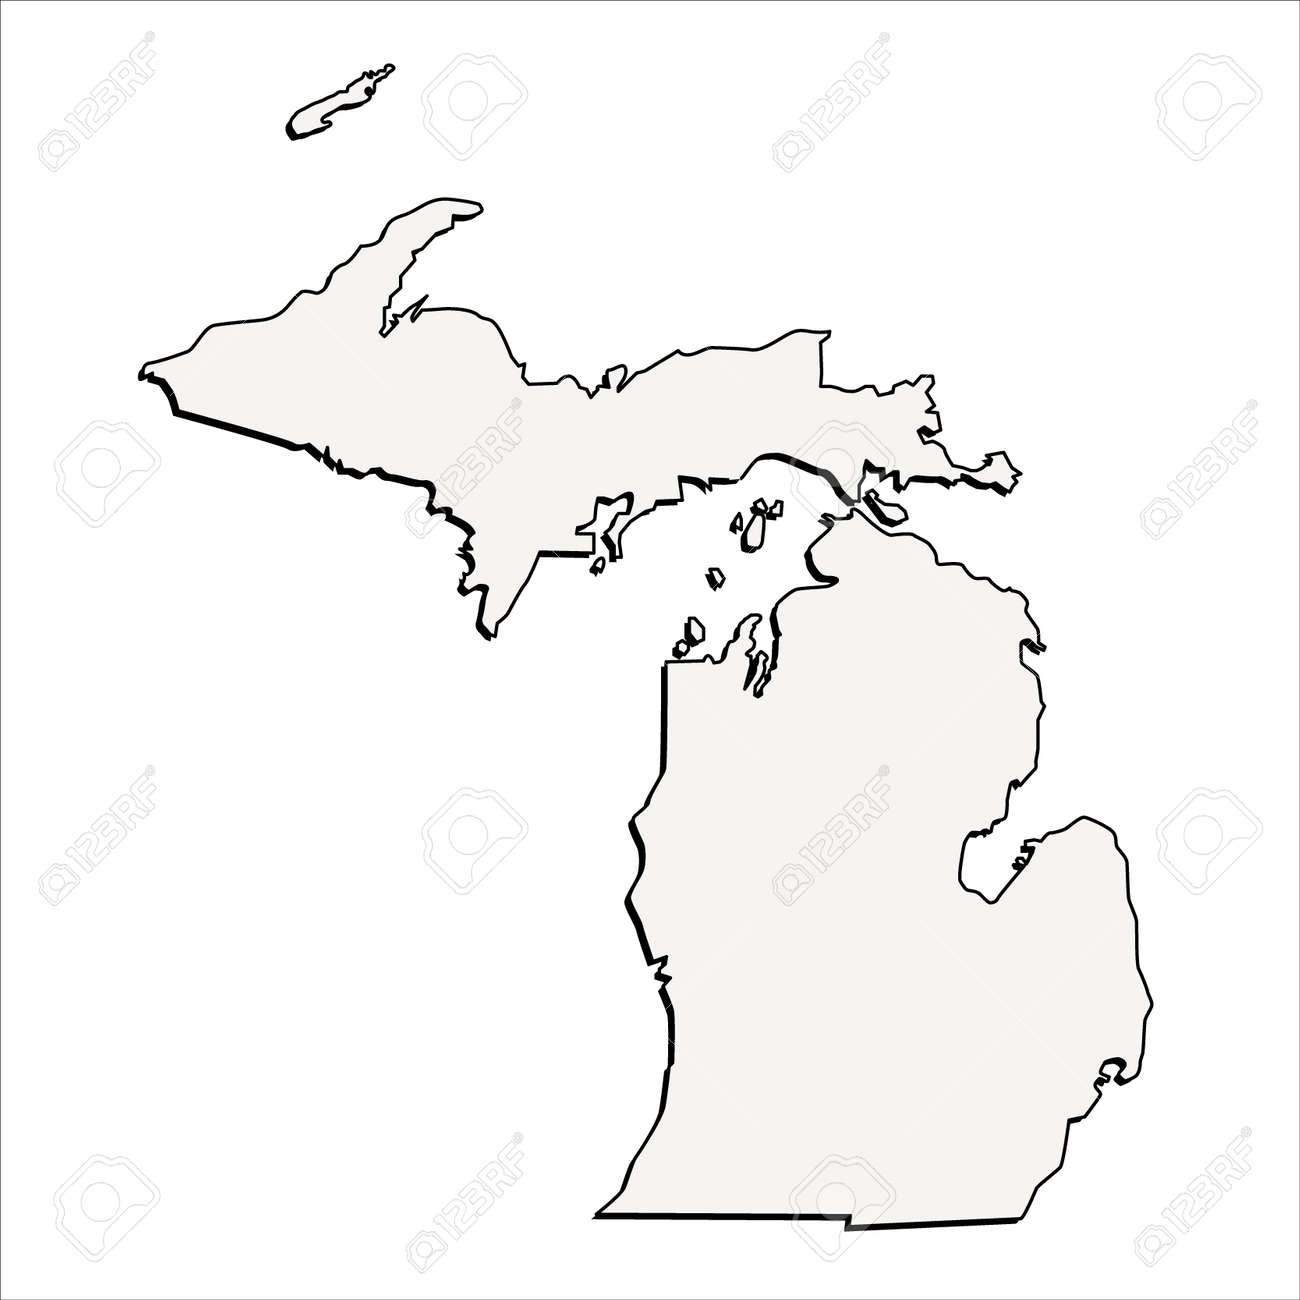 Vector Michigan State D Outline Map Royalty Free Cliparts - Michigan state map